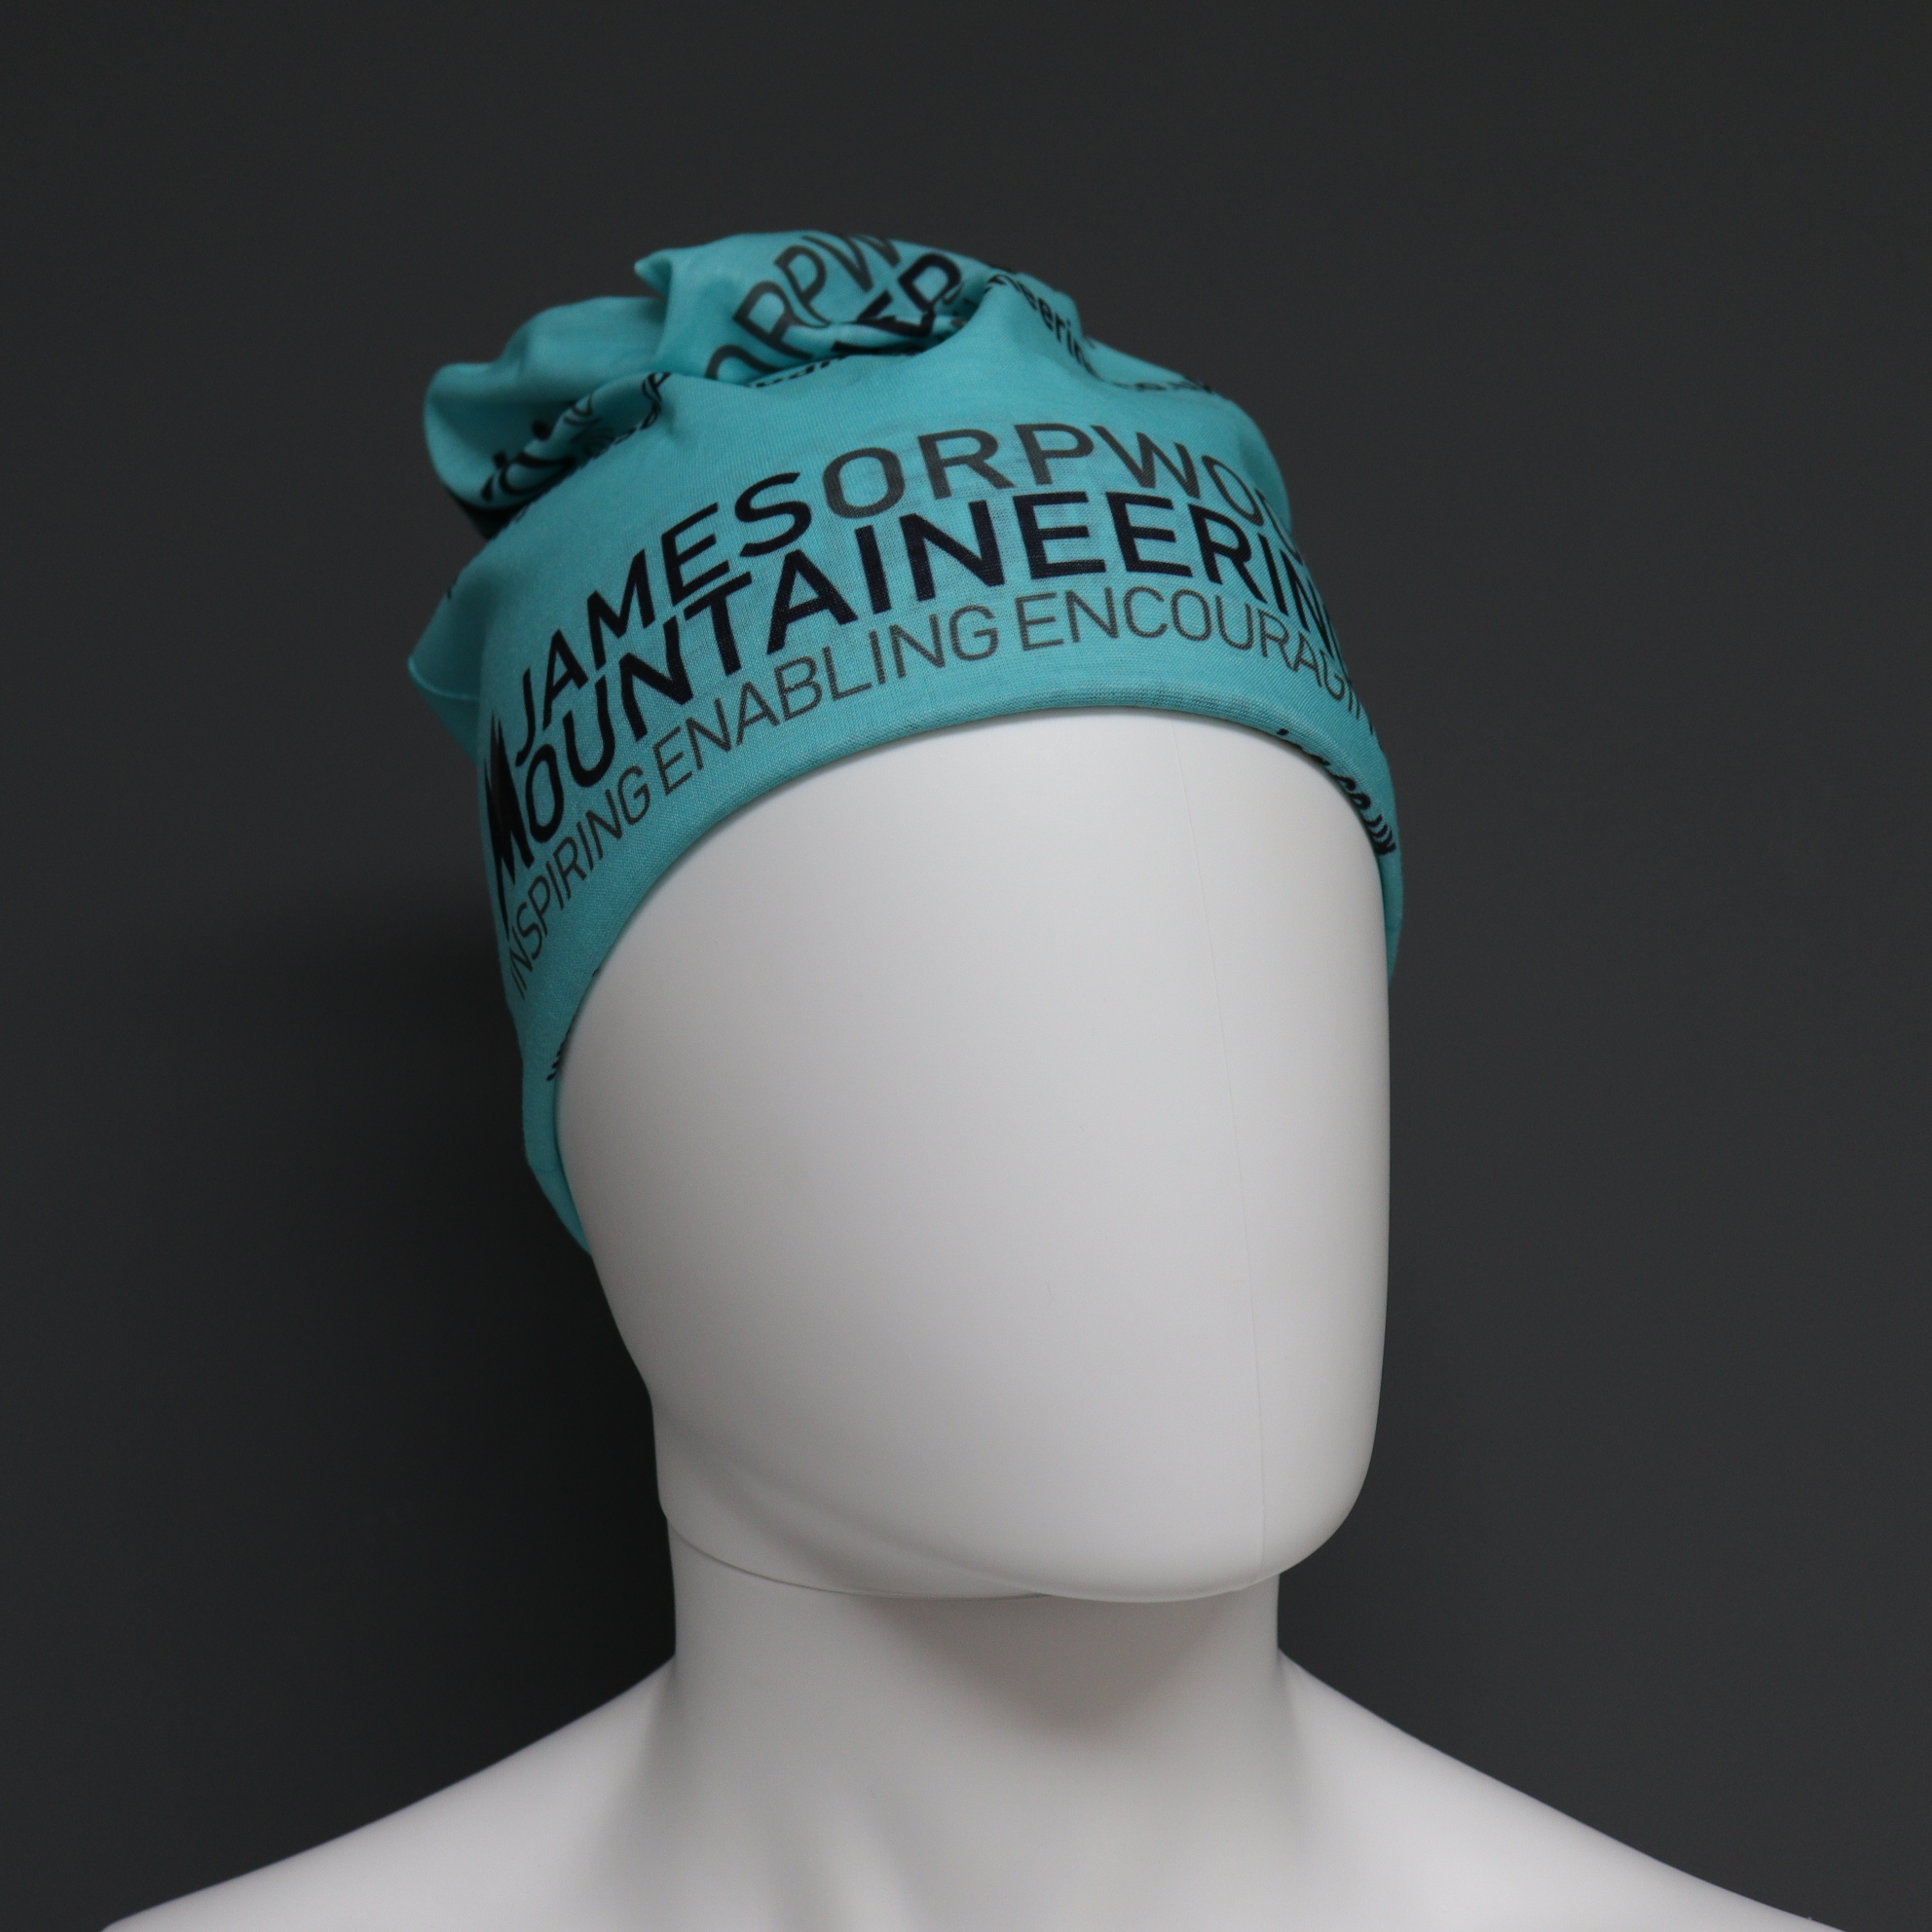 Buff Style Headwear - James Orpwood Mountaineering